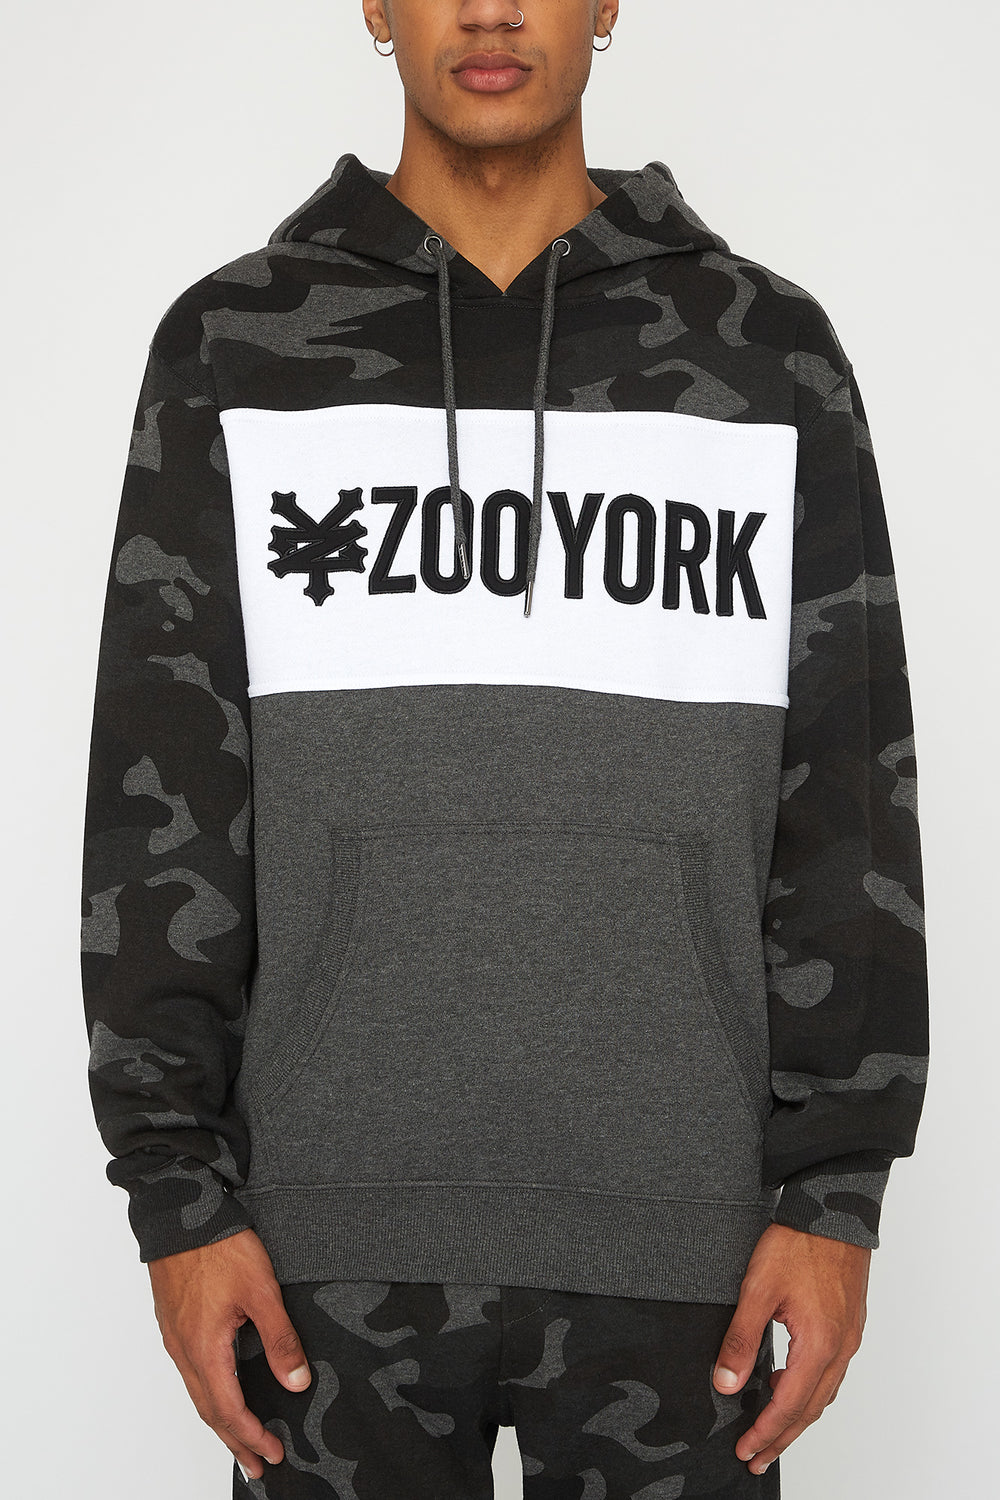 Zoo York Mens Camo Colour Block Hoodie Black with White